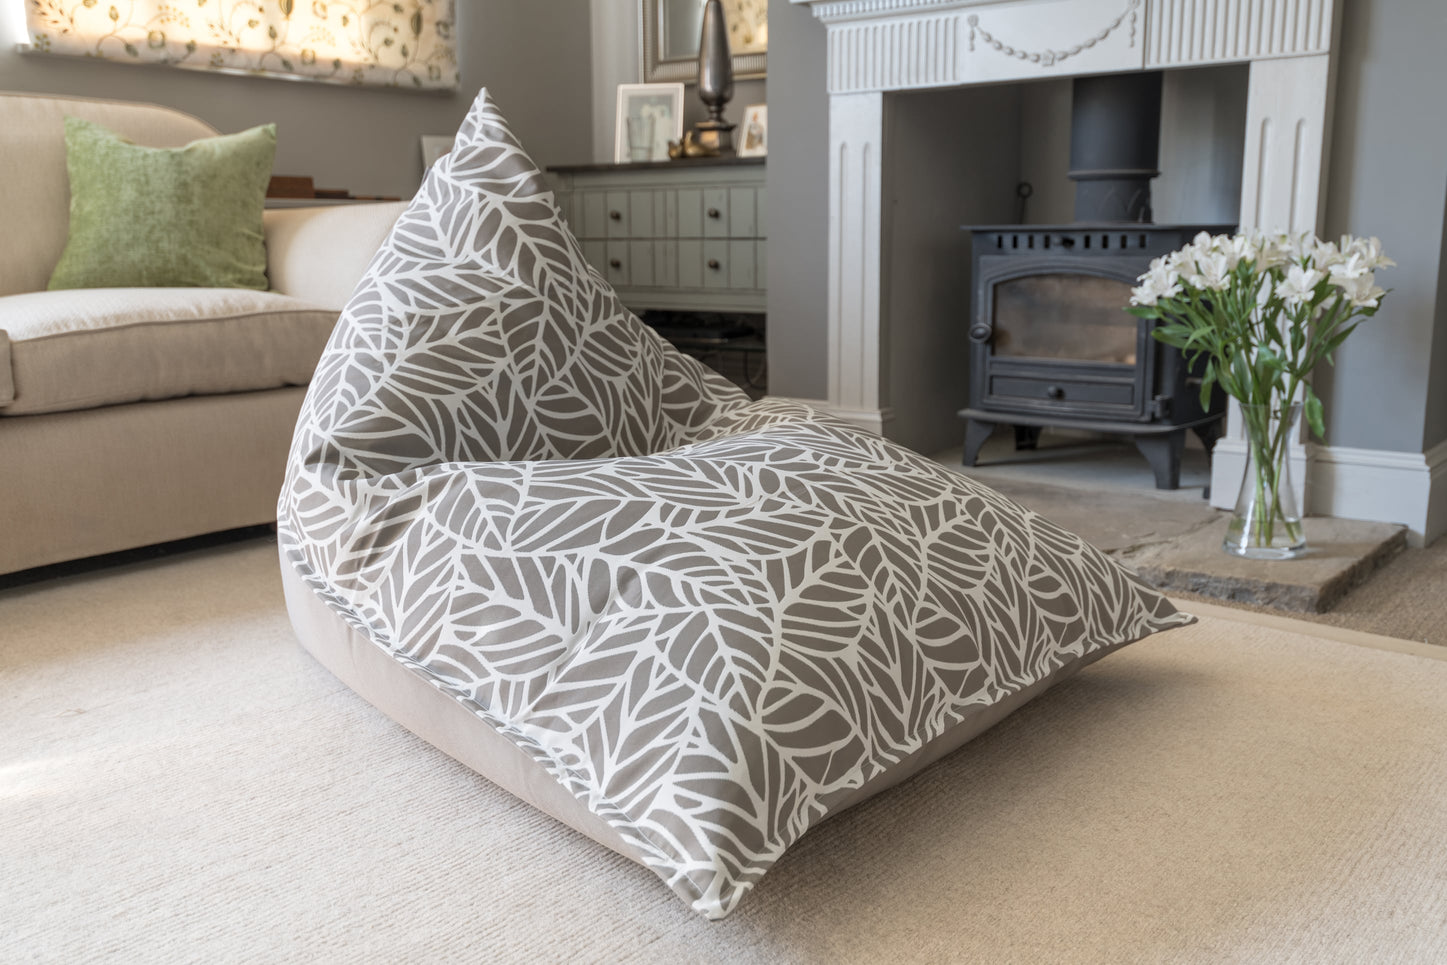 Armadillo Sun bean bag chair in neutral pumice and white palm pattern indoors by fireplace